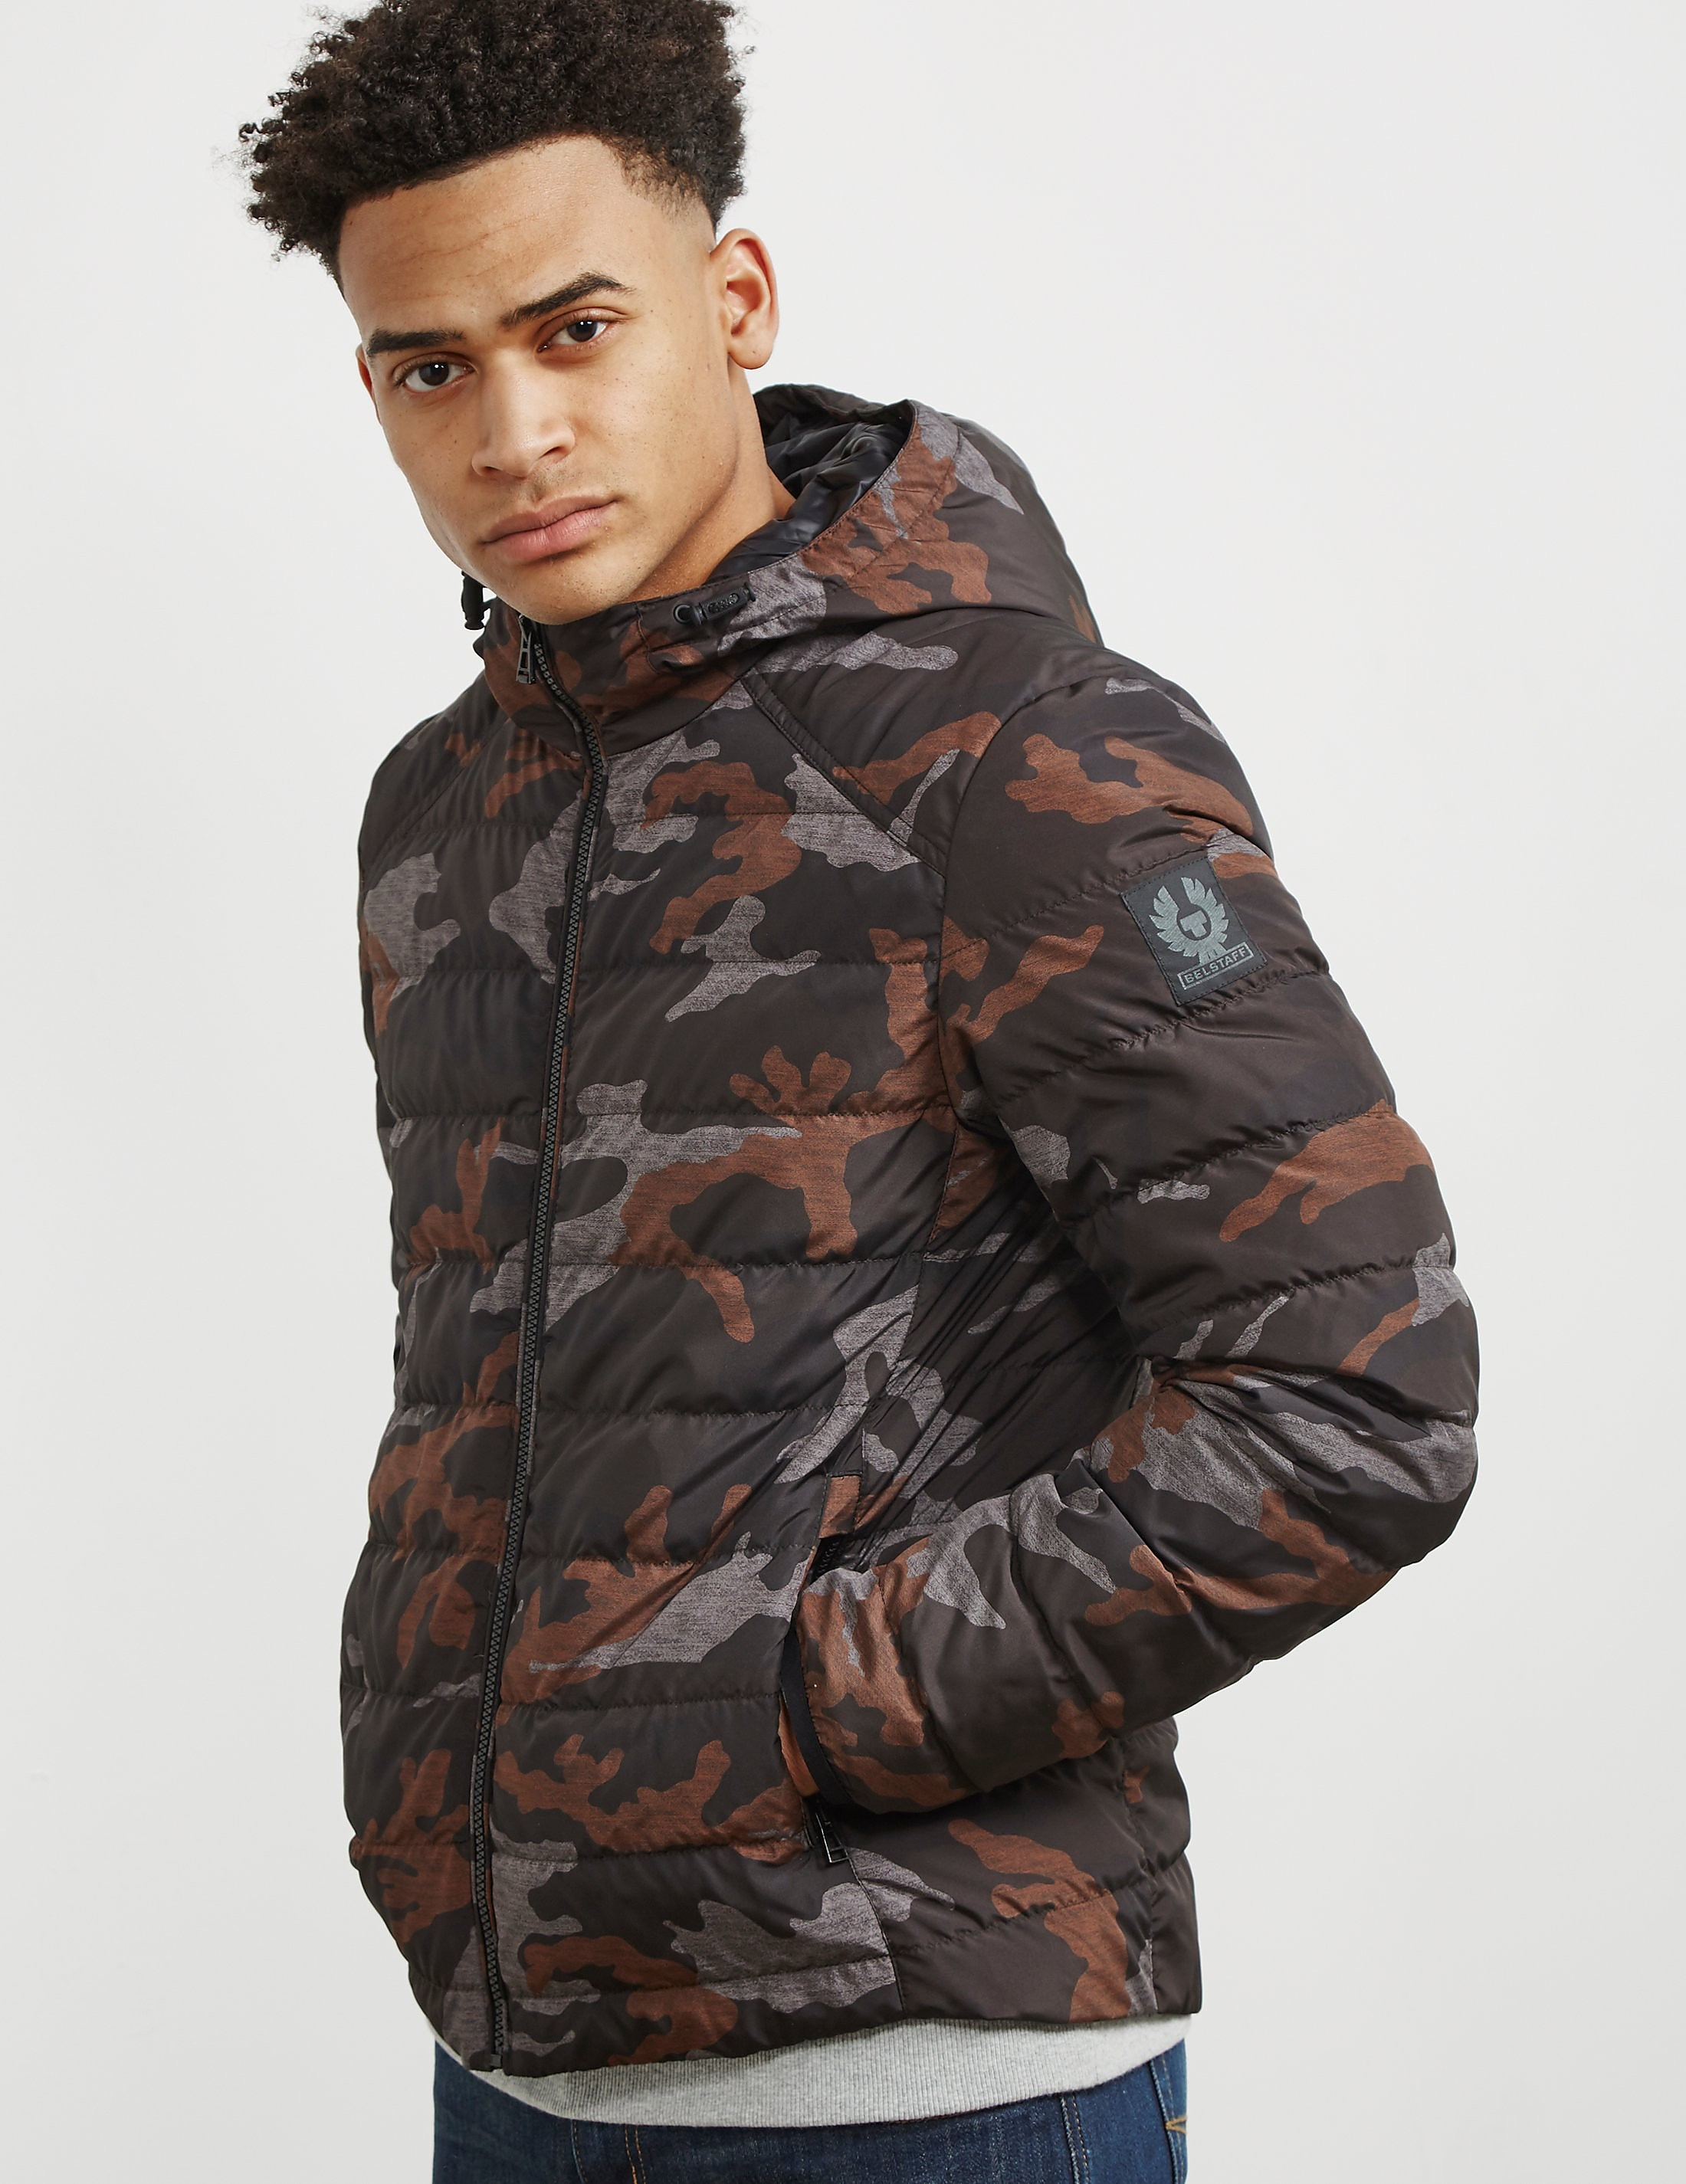 Belstaff Hooded Camo Jacket